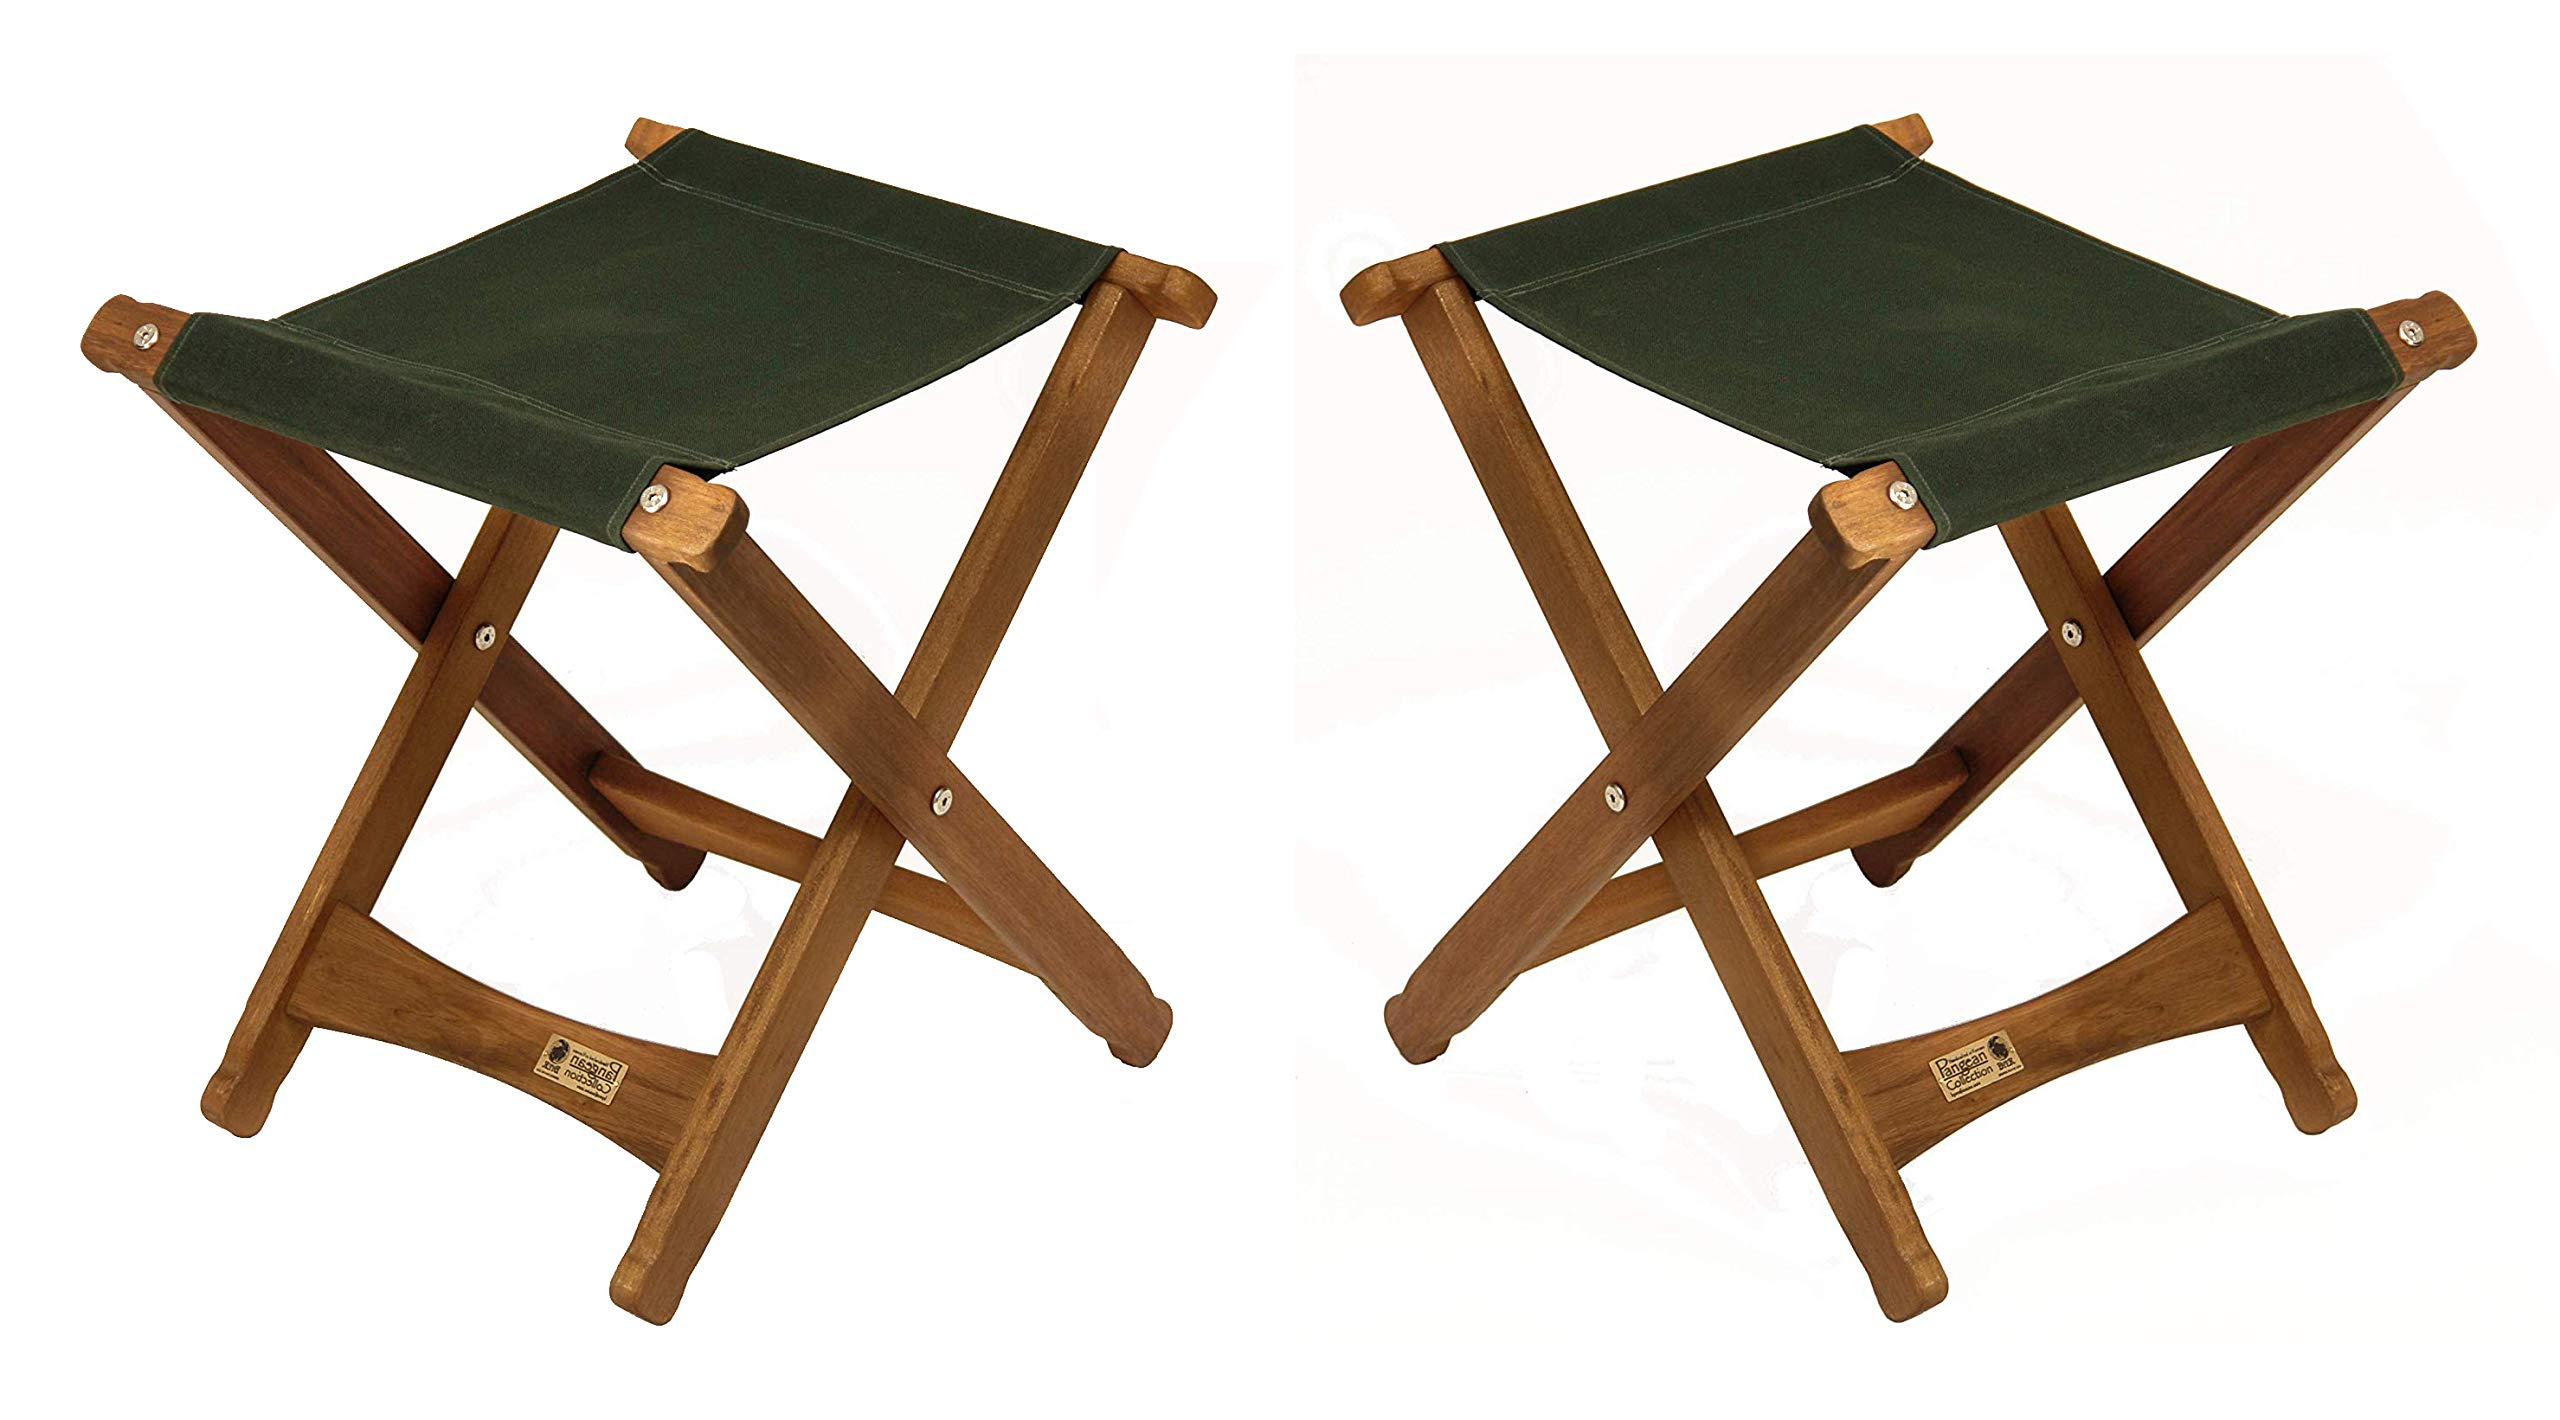 BYER OF MAINE, Pangean, Folding Stool, Hardwood, Easy to Fold and Carry, Wood Folding Stool, Canvas Camp Stool, Perfect for Camping, Matches All Furniture in The Pangean Line, Green, Two Pack by BYER OF MAINE